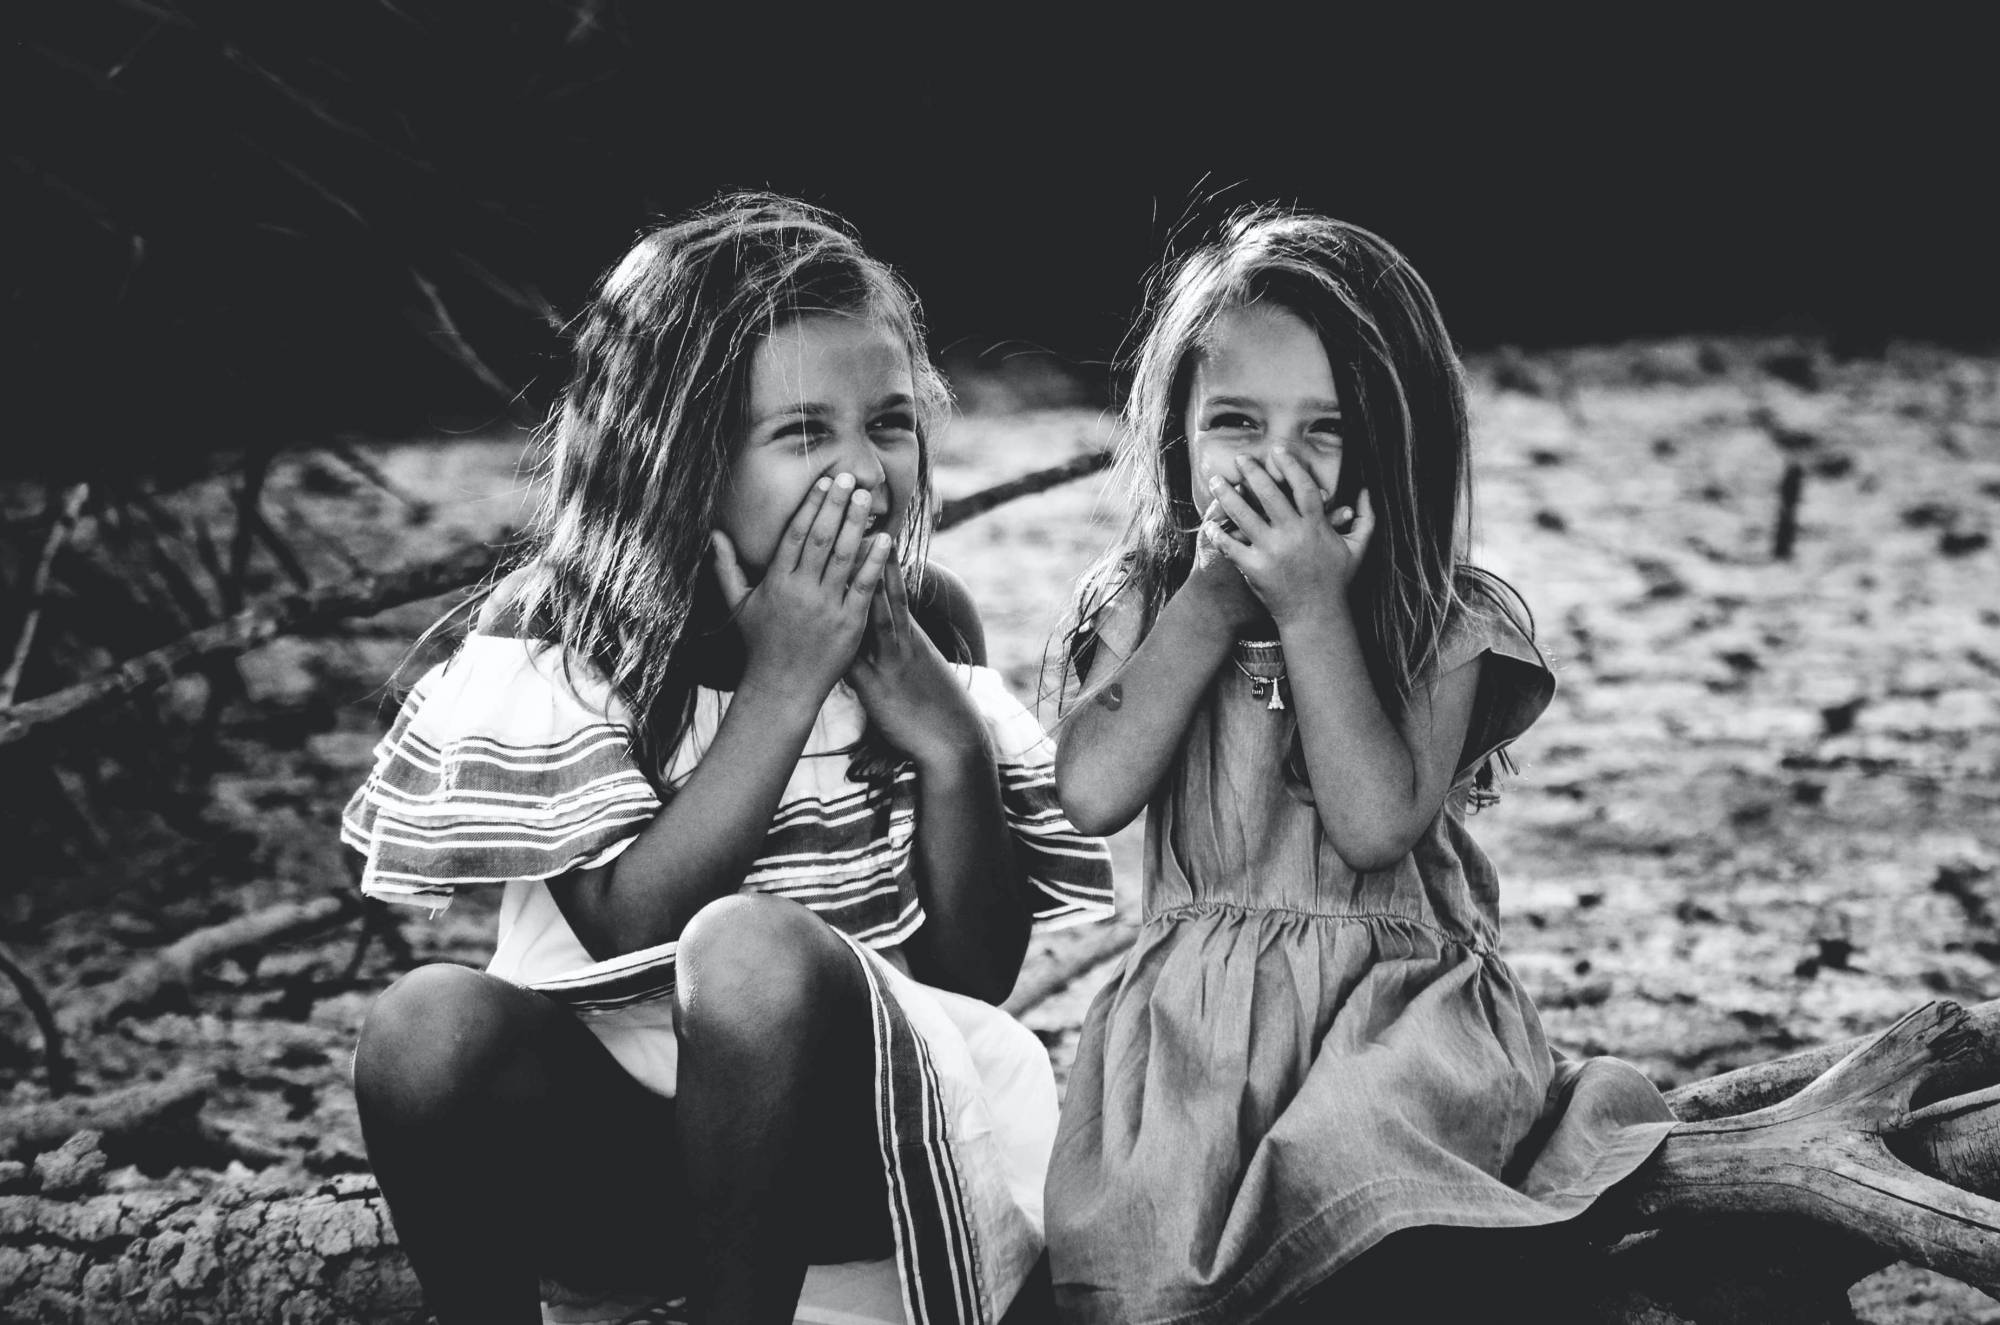 A black and white photo of two young girls laughing.